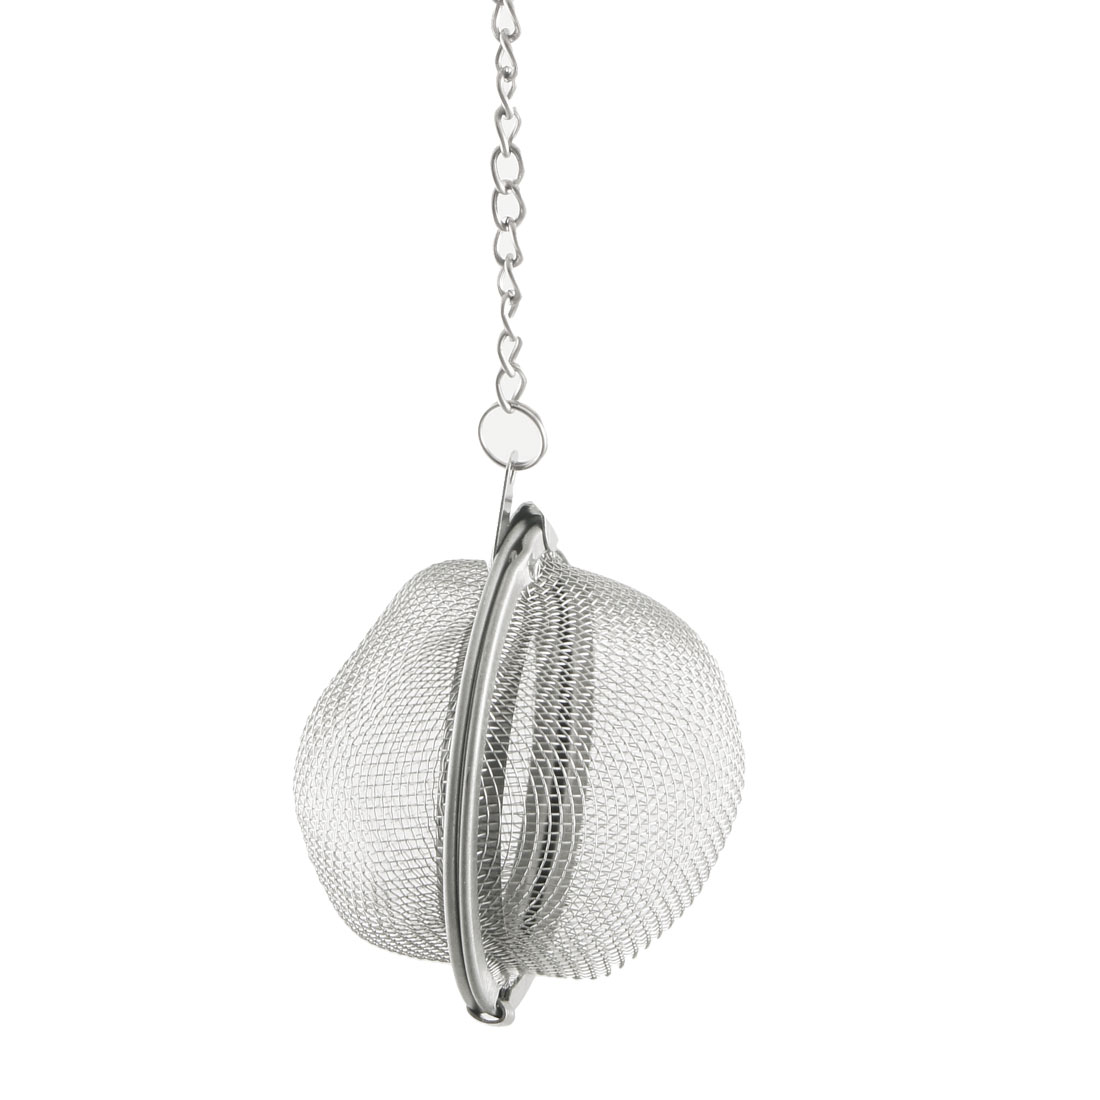 "Reusable Stainless Steel Mesh Ball Loose Tea Strainer Infuser 2"" w Chain"